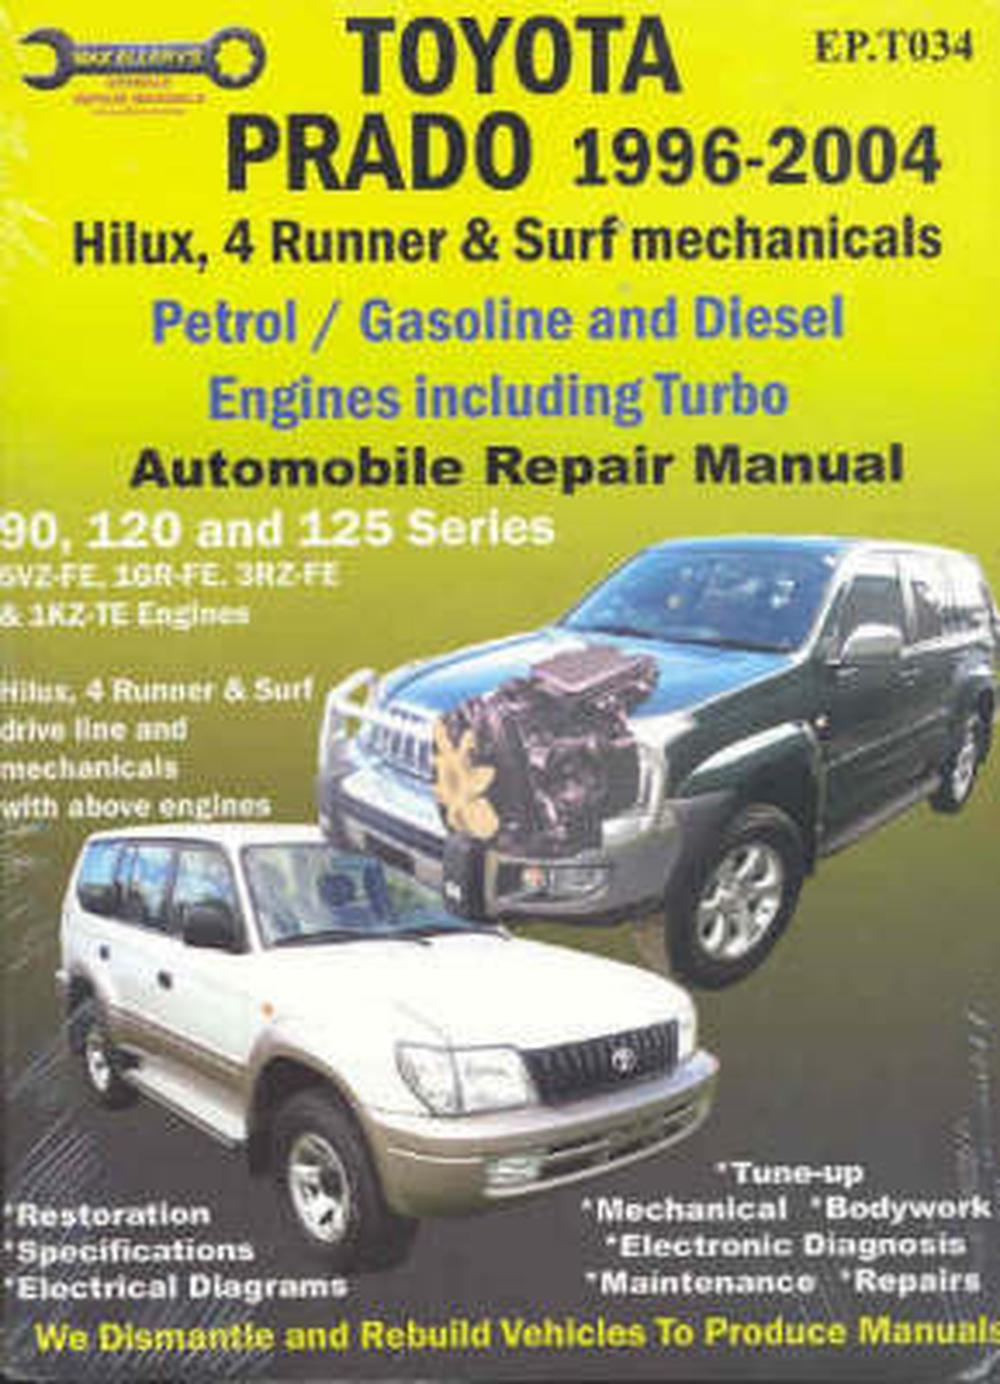 Toyota Prado 1996-2008 Automobile Repair Manual: Hilux, 4 Runner & Surf  Mechanicals: Petrol / Gasoline and Diesel Engine